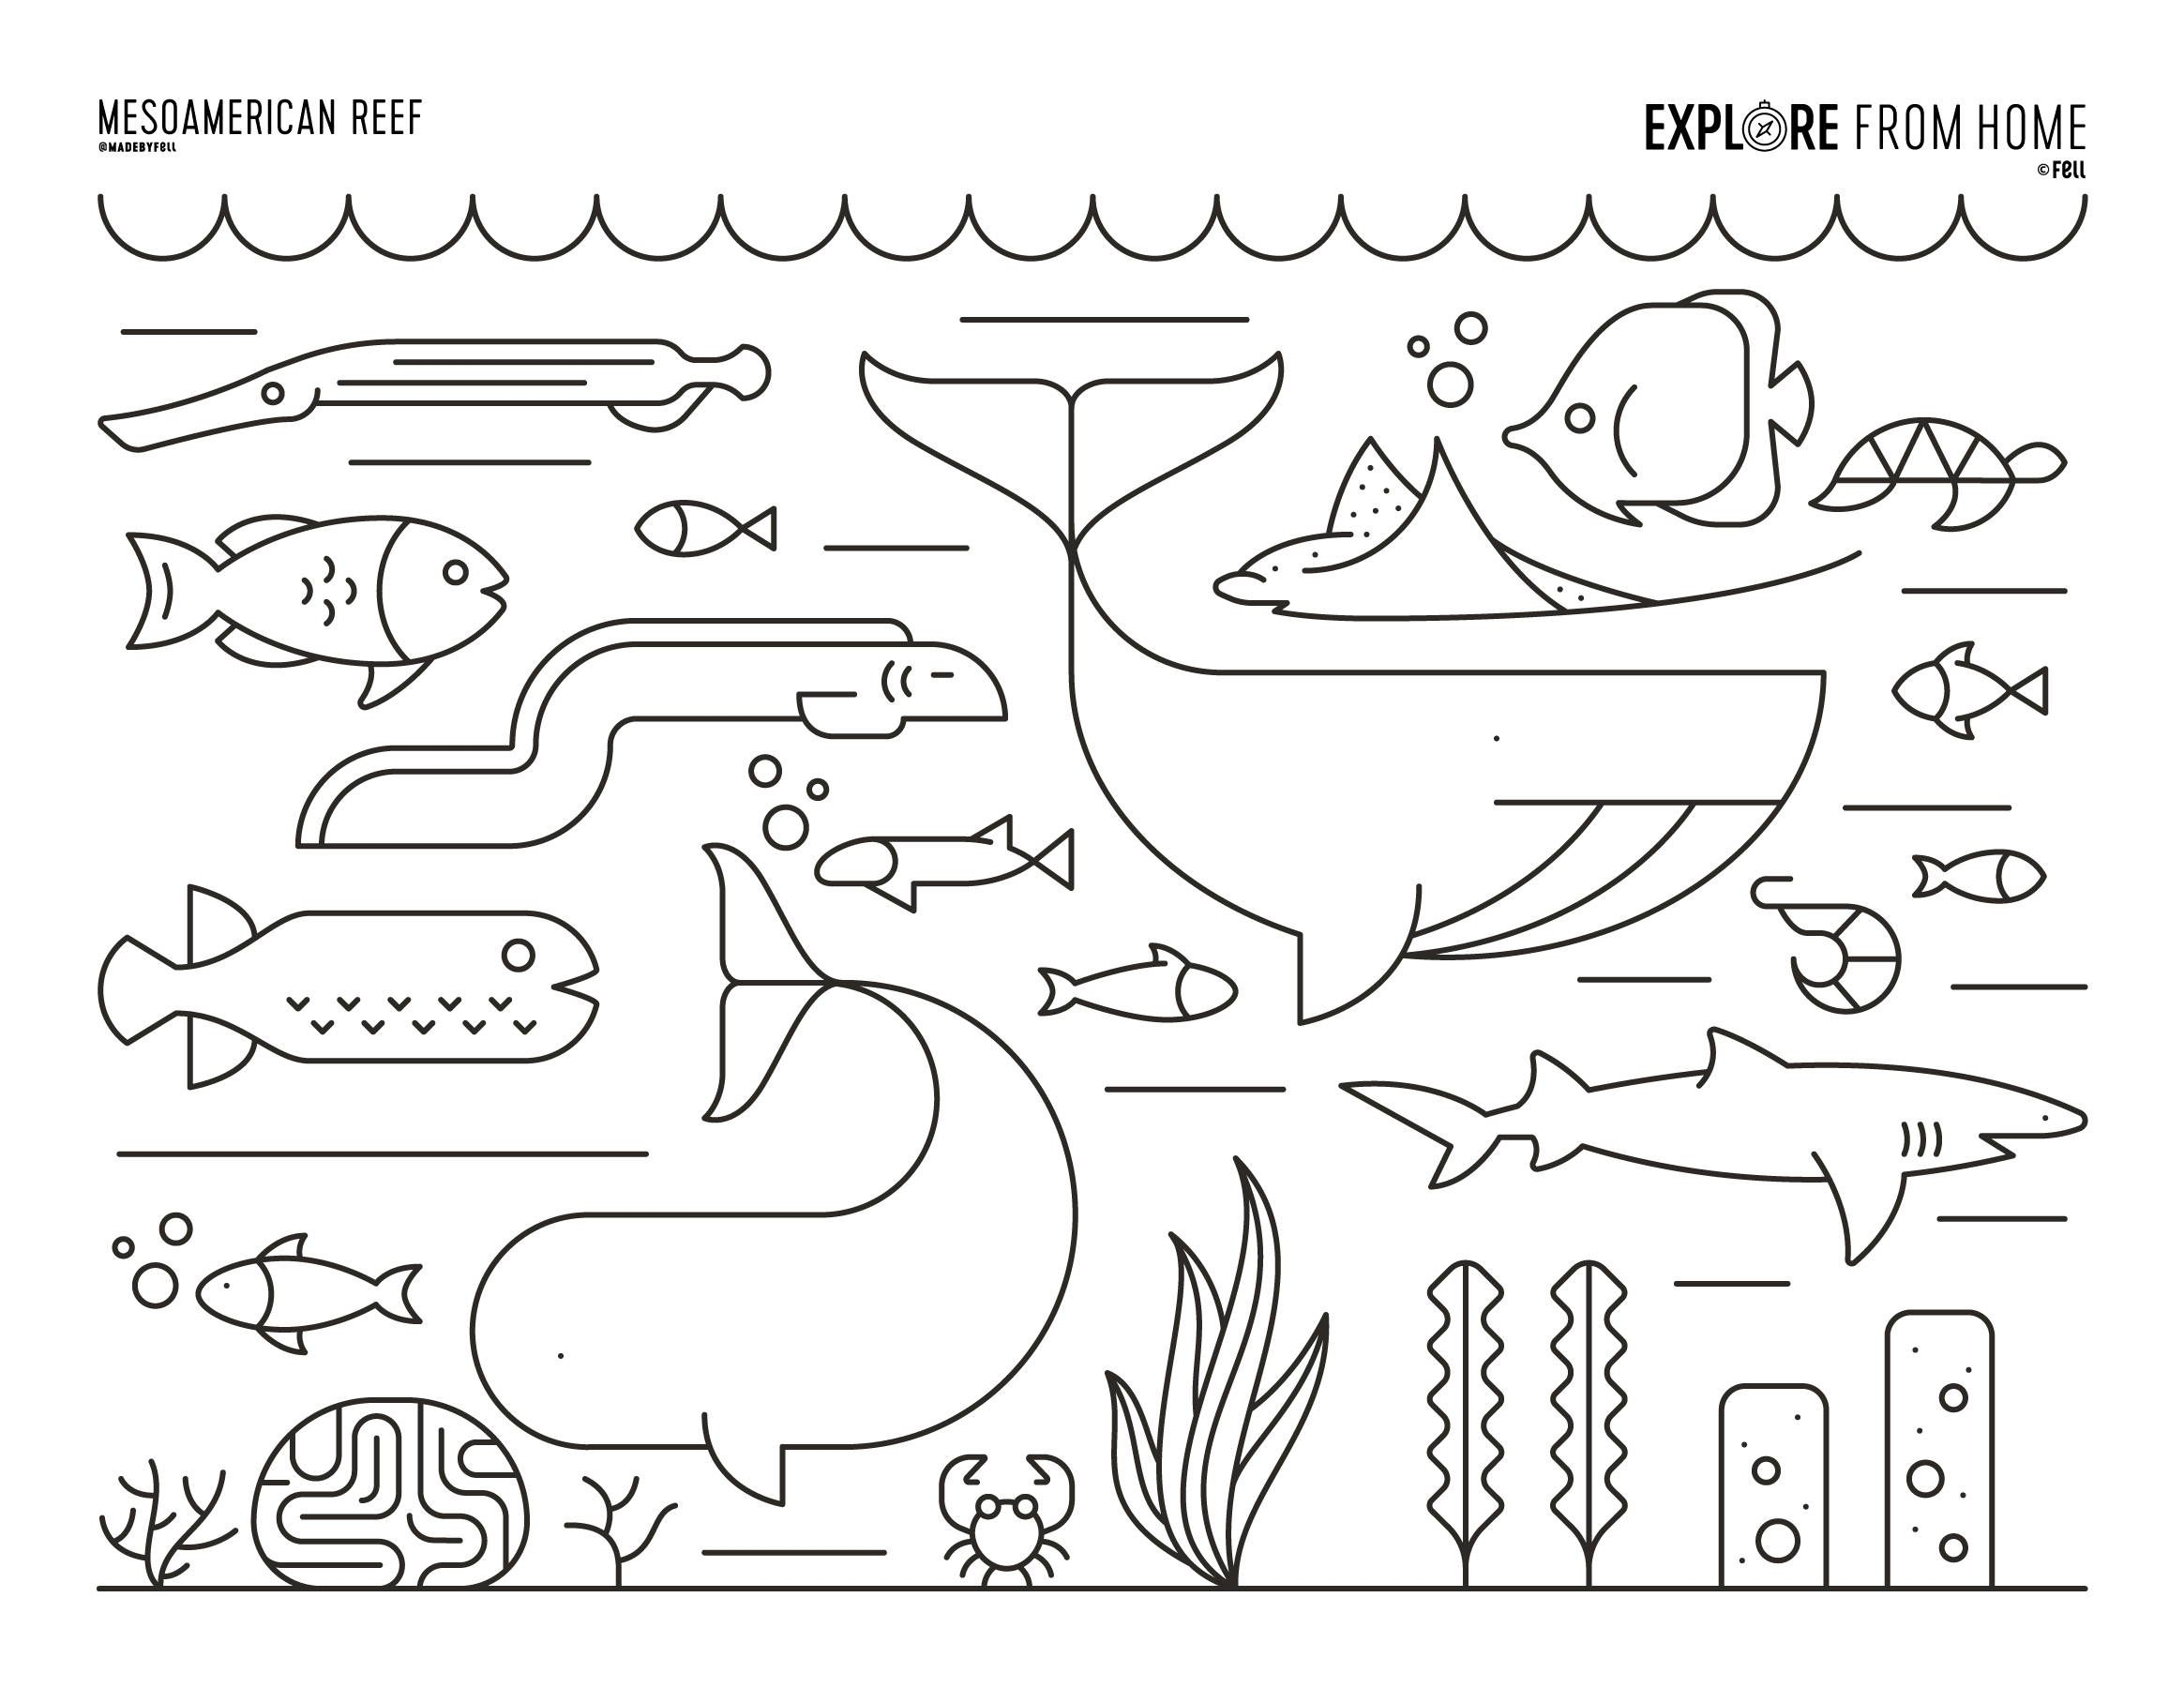 Biomes Mesoamerican Reef Coloring Page Fruit Coloring Pages Coloring Pages Free Printable Coloring Pages [ 1800 x 2329 Pixel ]